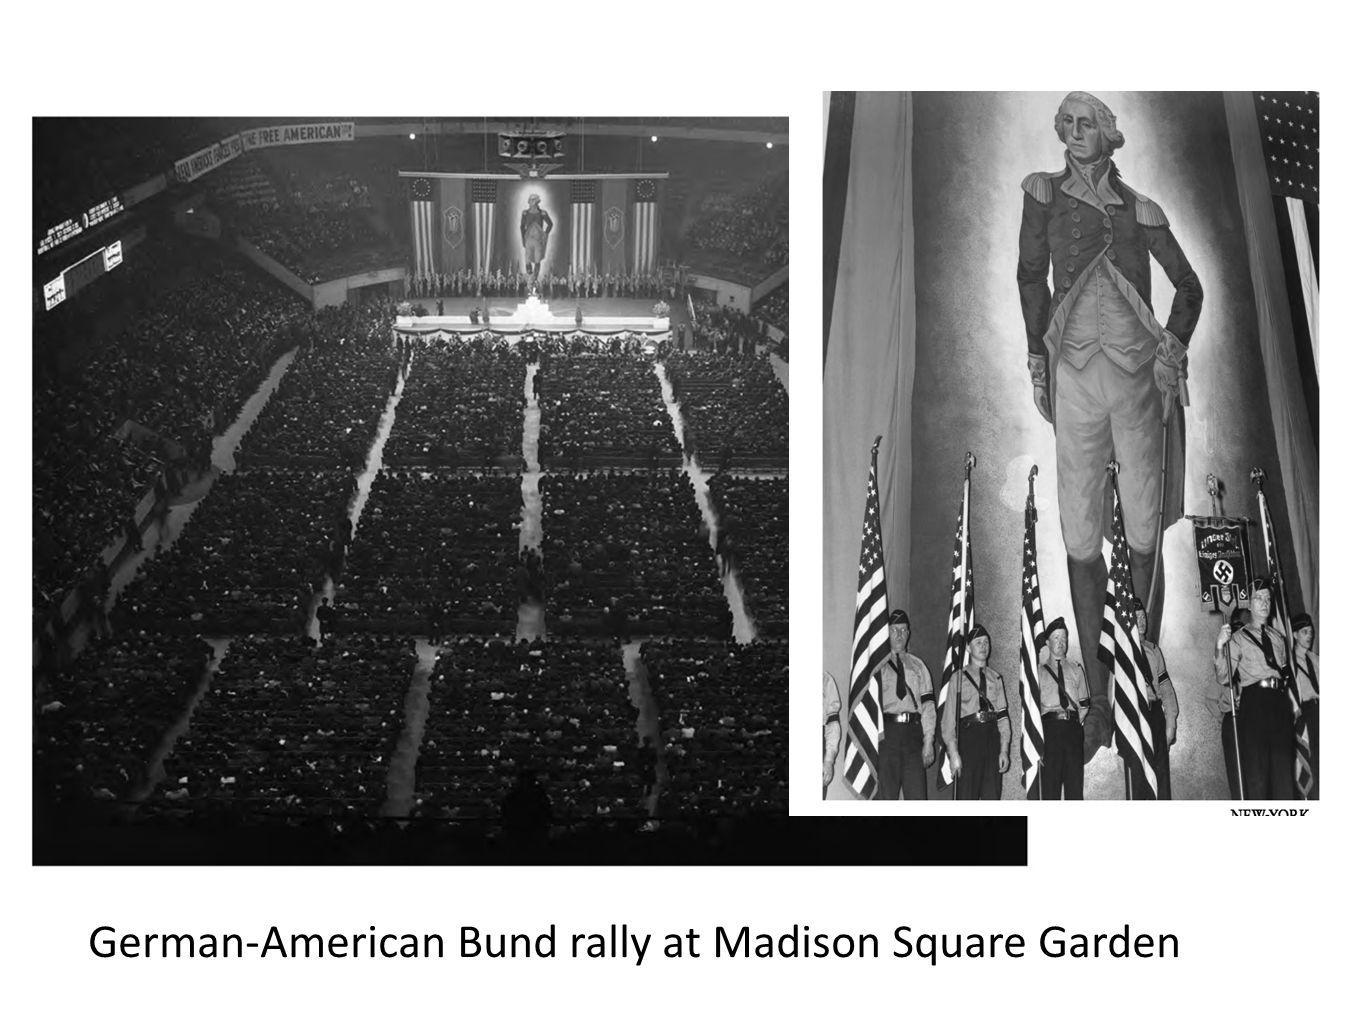 German-American Bund rally at Madison Square Garden